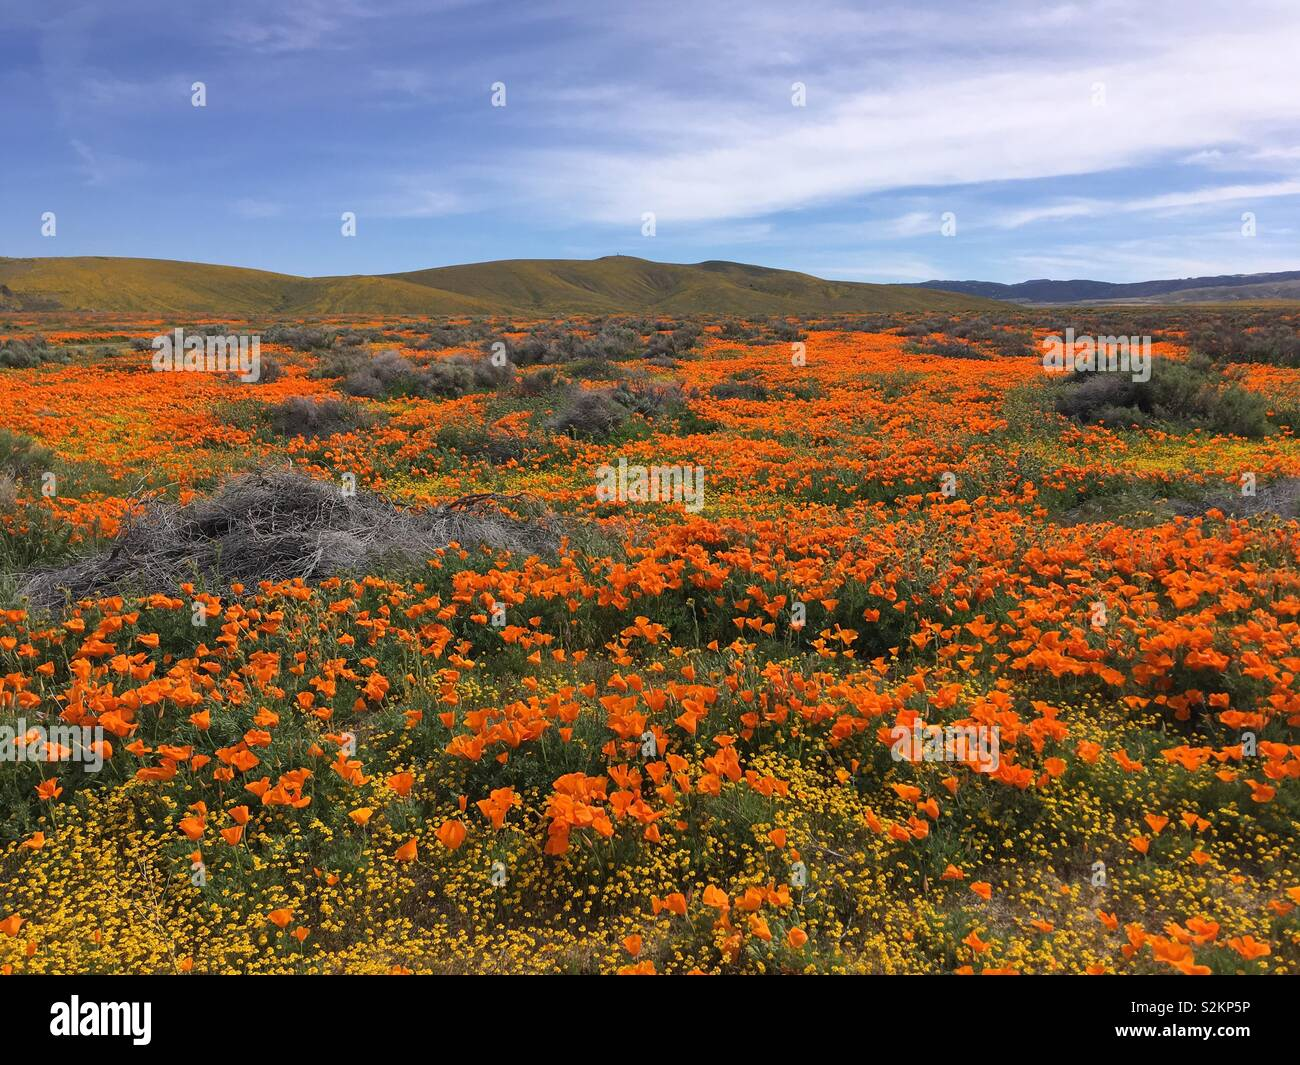 Superbloom of Poppies and Goldfields in Lancaster, California - Stock Image